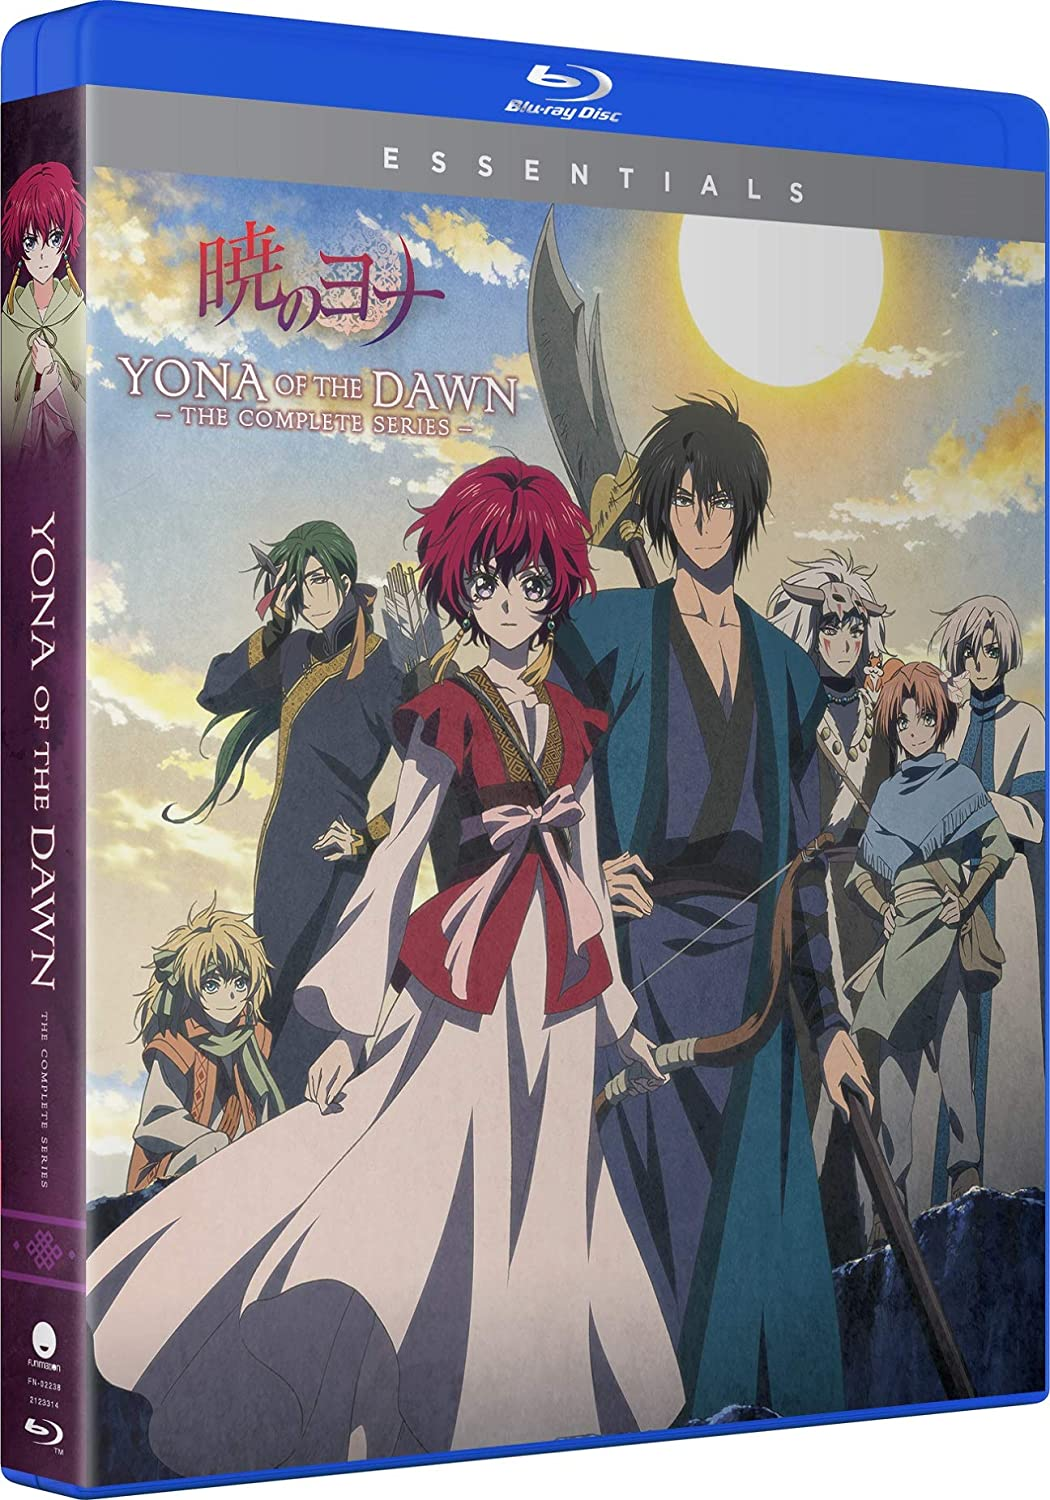 Yona of the Dawn Complete Series Essentials Blu-ray (Dual Audio)